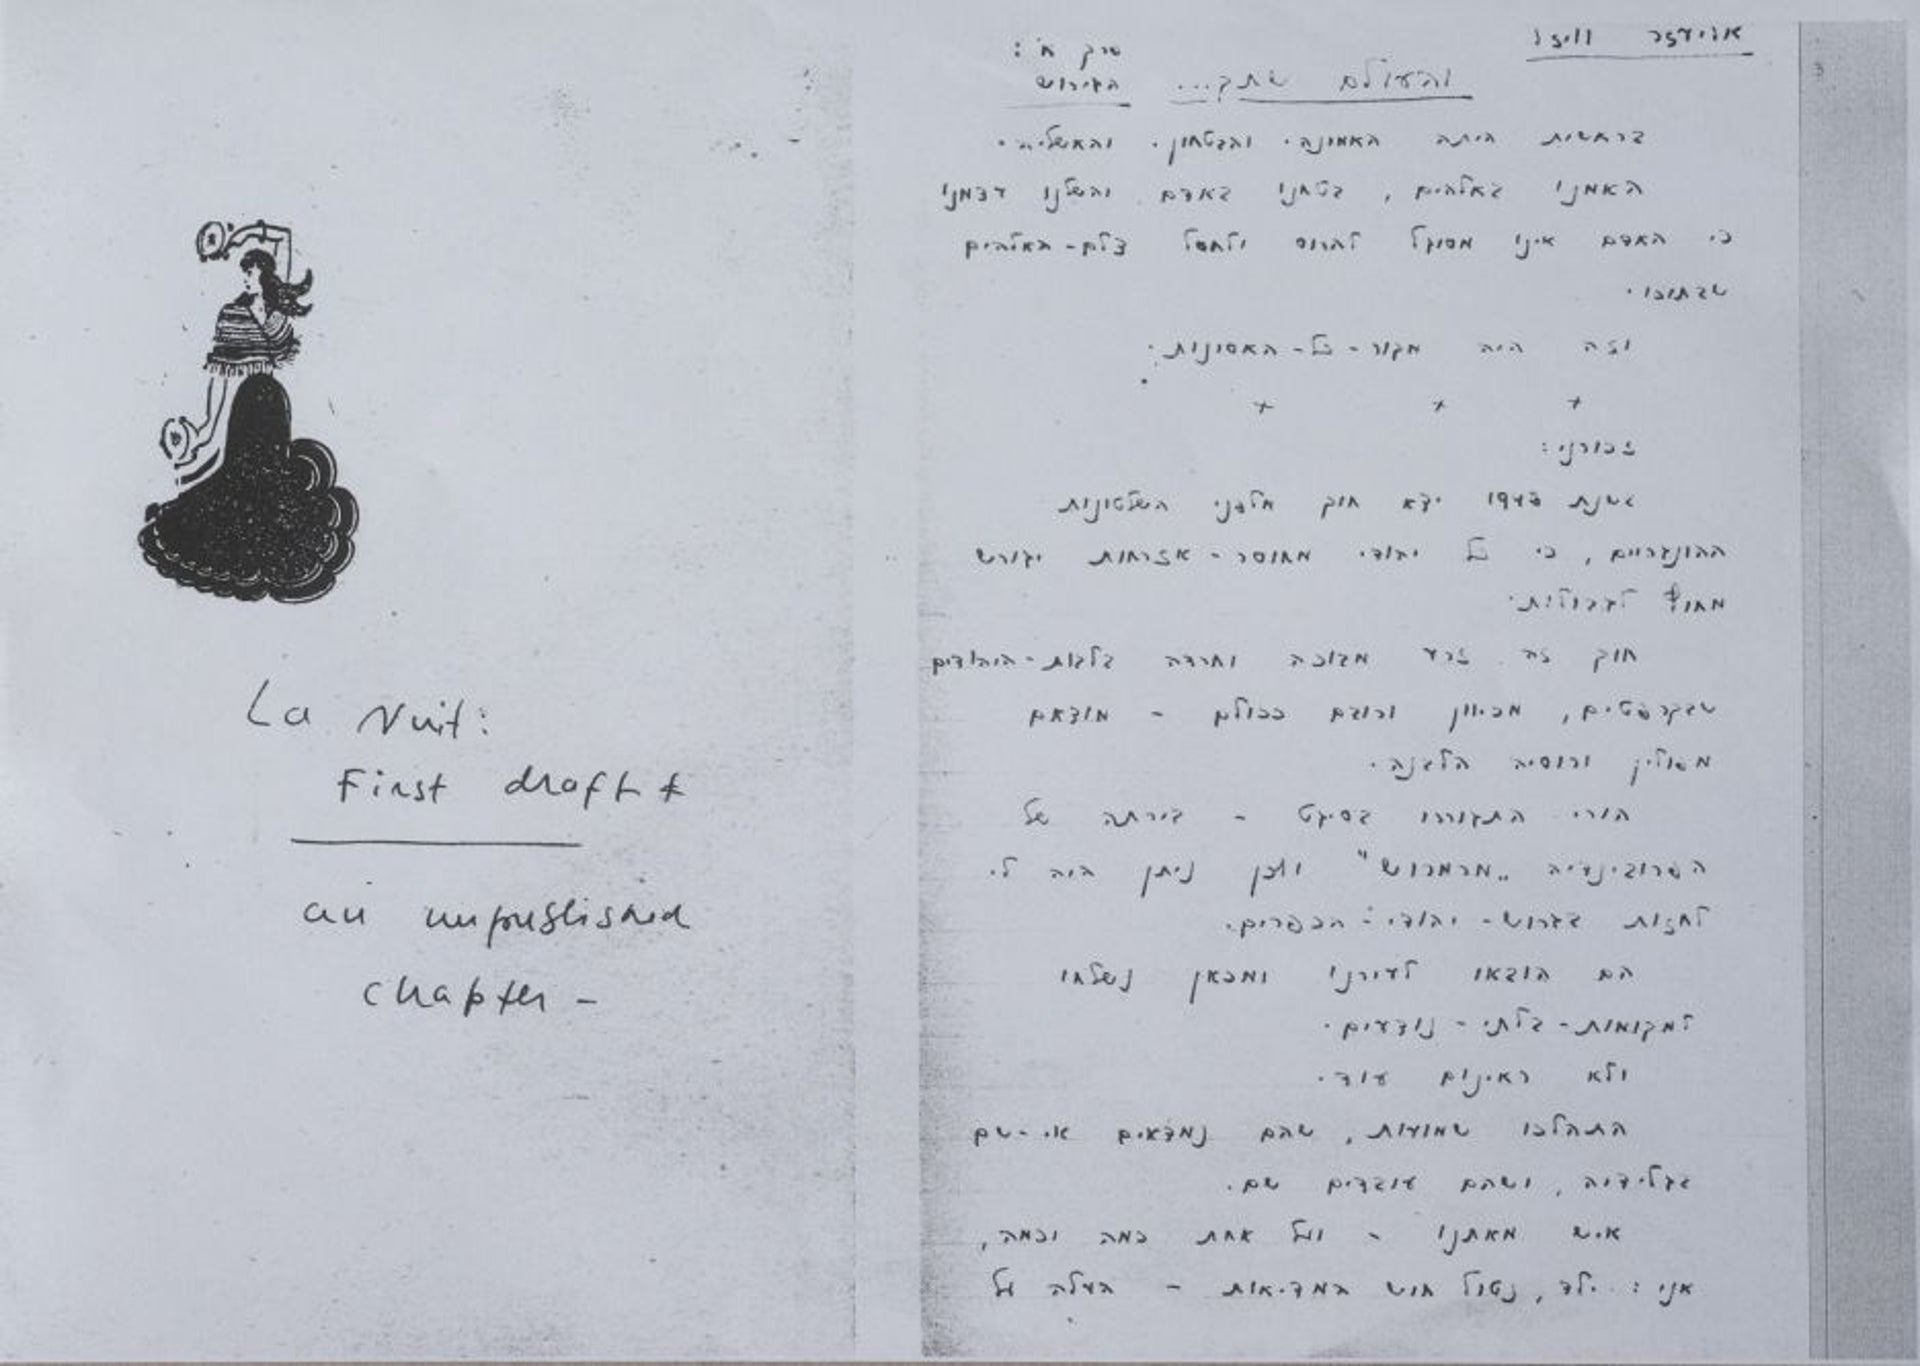 Elie Wiesel's missing 'Night' manuscript.